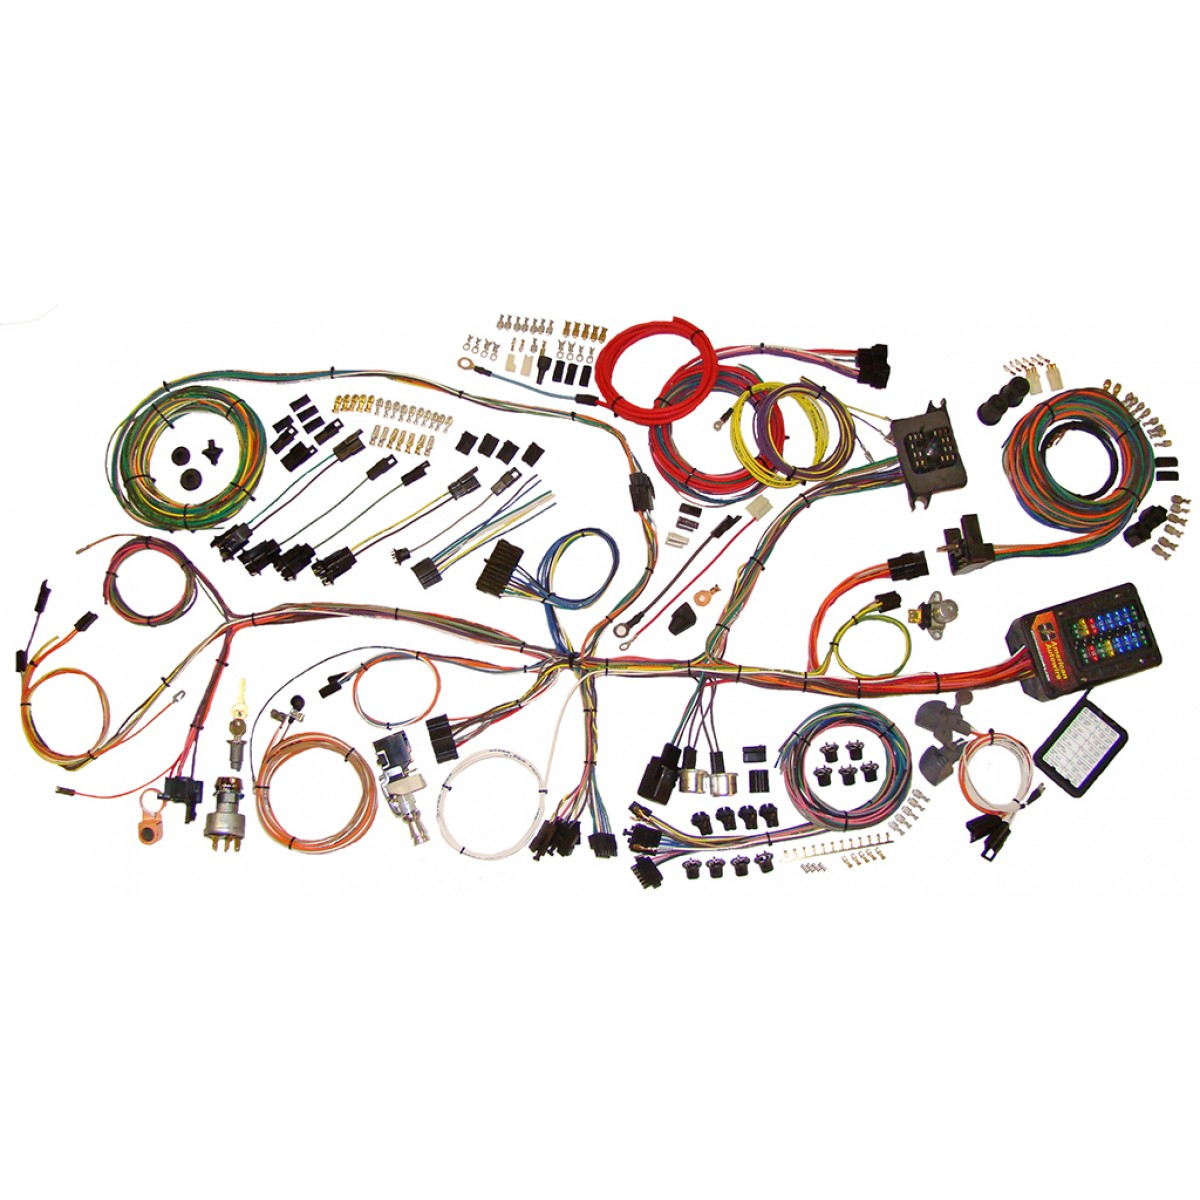 hight resolution of complete wiring harness kit 1962 1967 nova part 510140